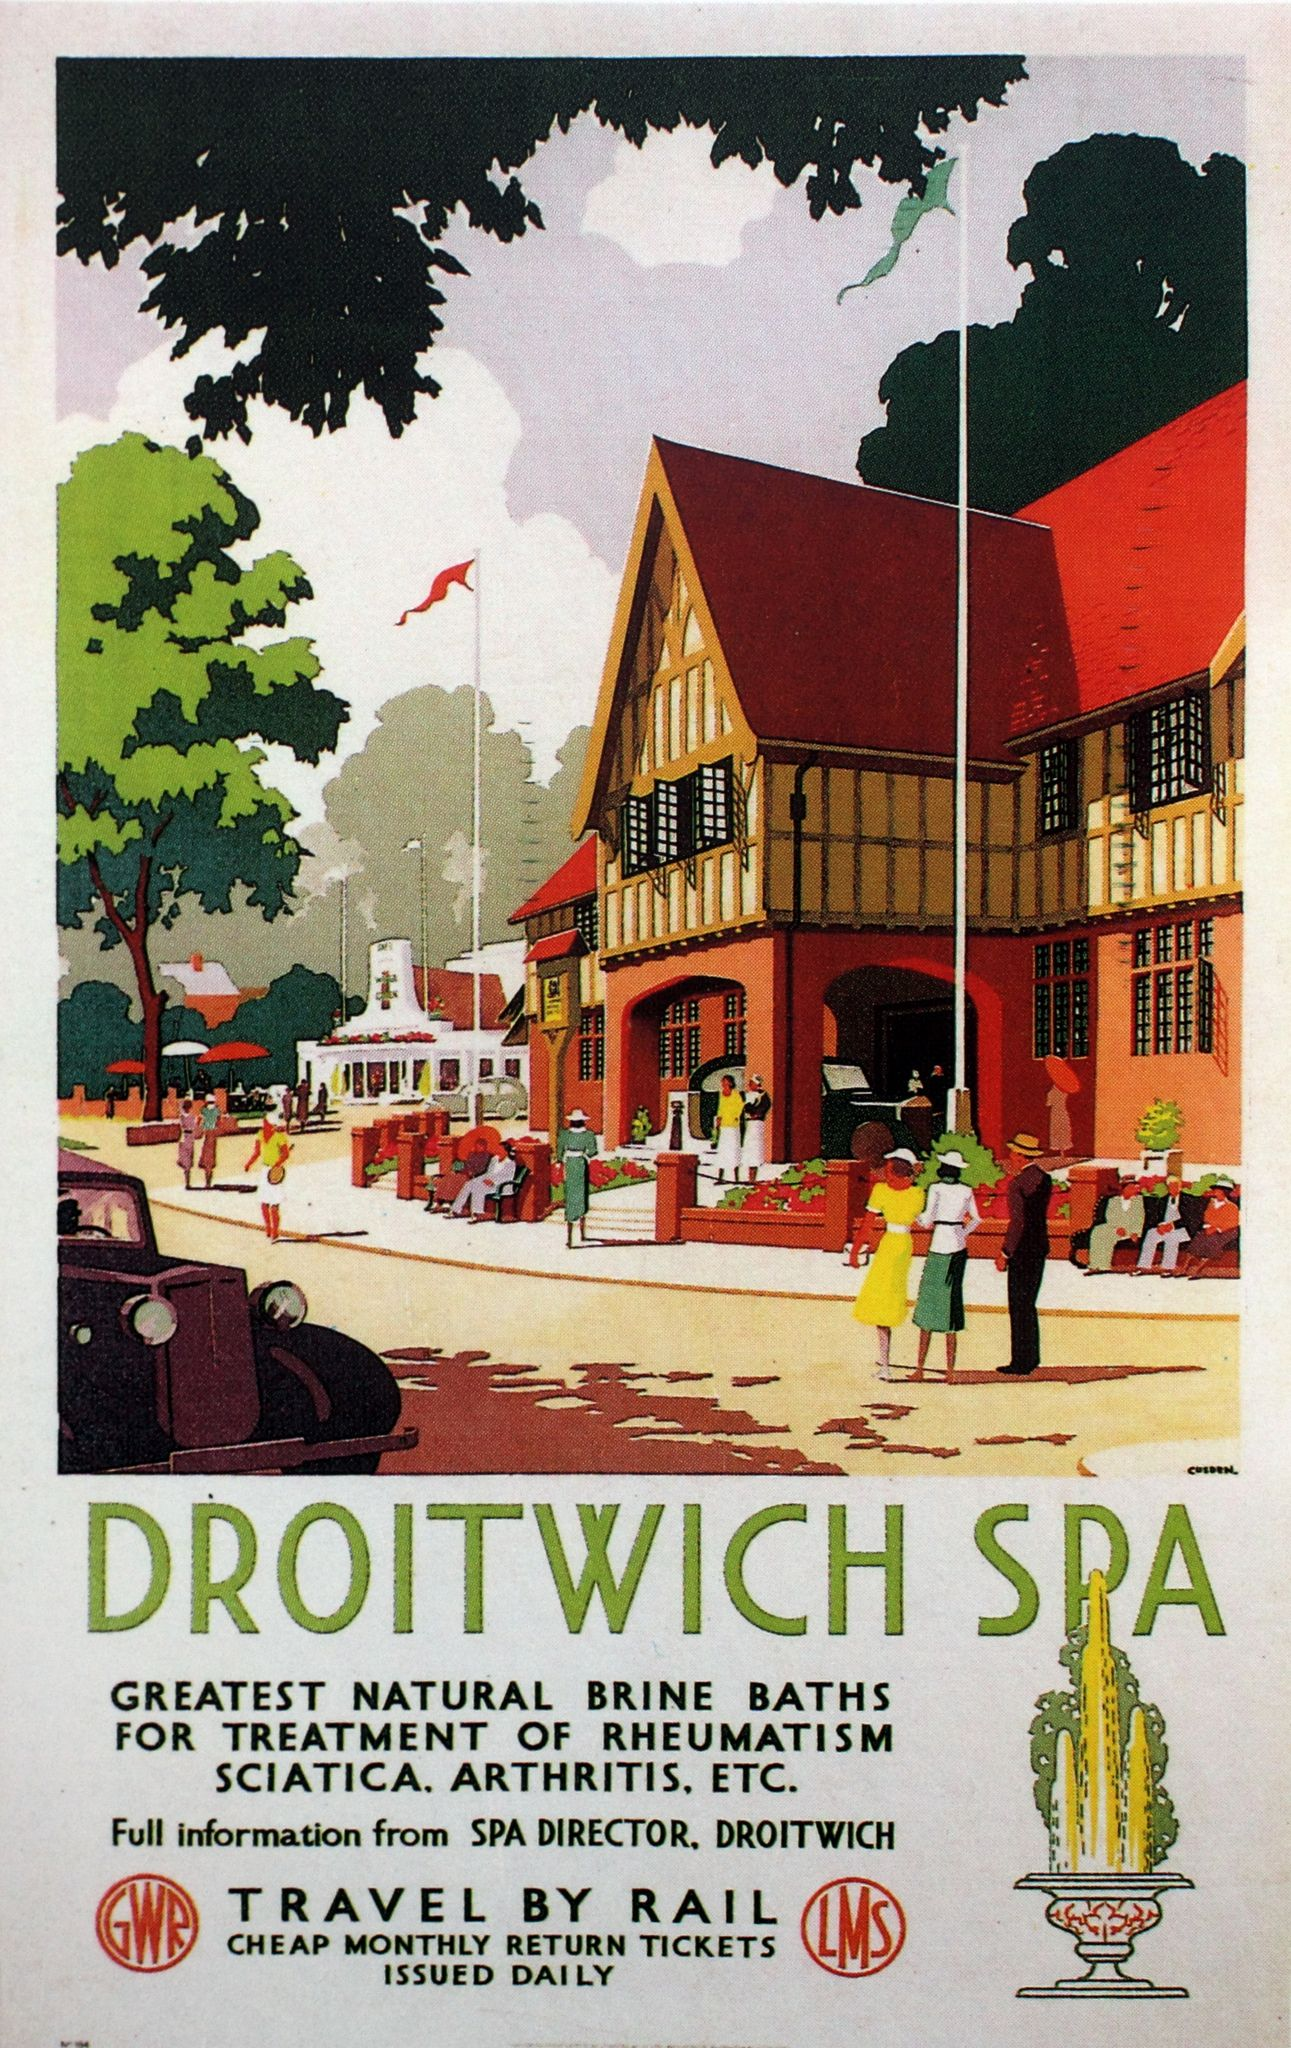 Droitwich In 2019 Arm Chair Travel Posters 5 Train